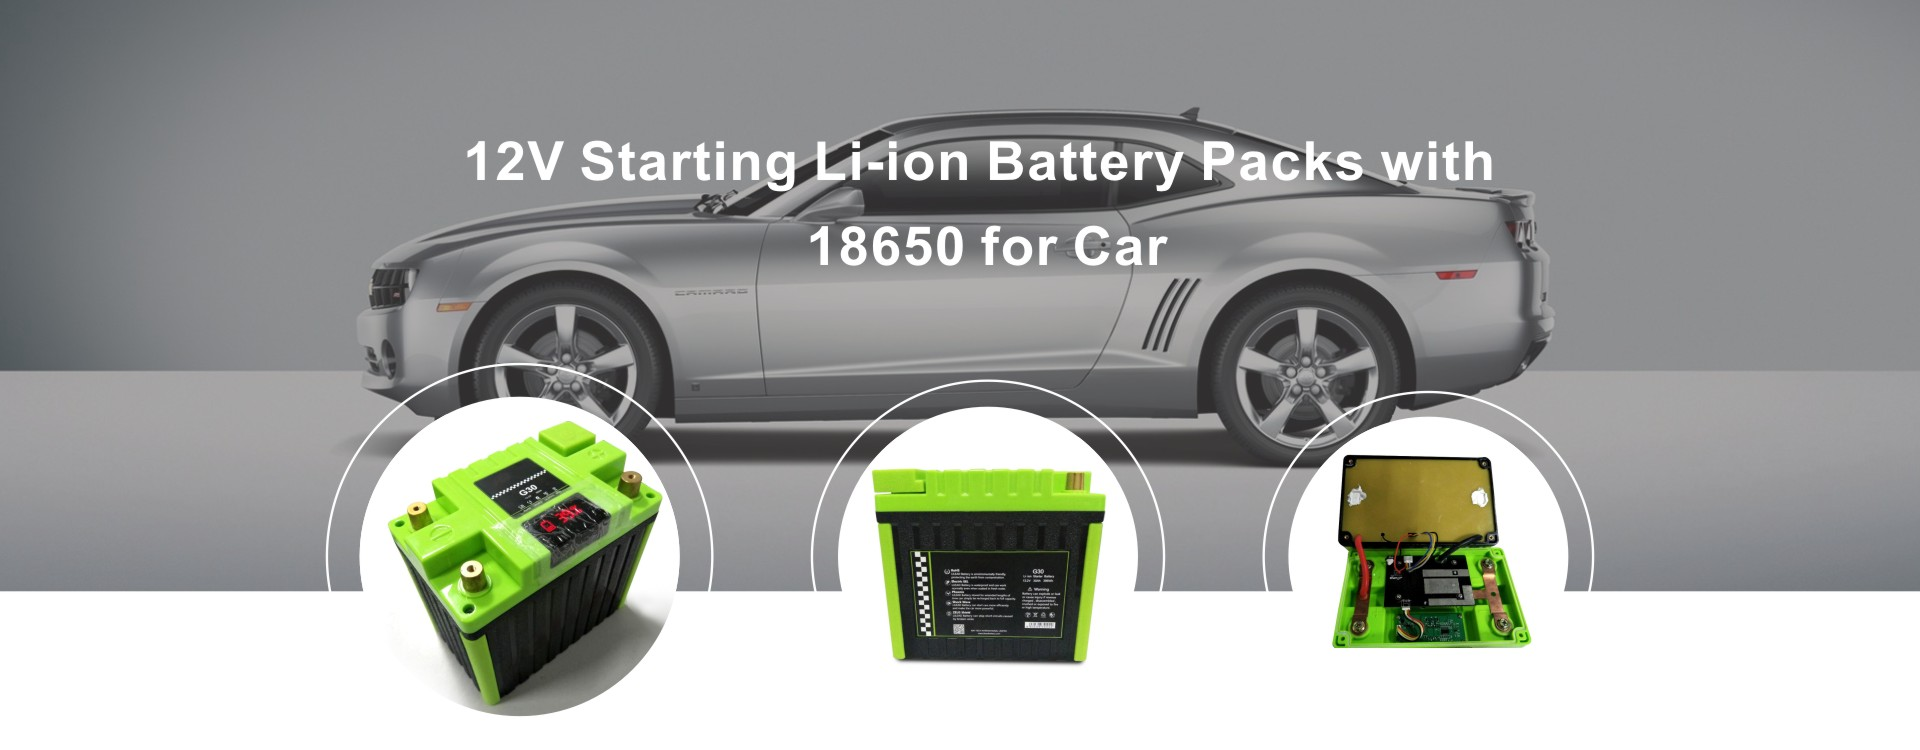 Lithium ion battery,18650 Battery,Rechargeable batteries,Lithium battery,Battery pack,Starting Li-ion Battery Packs